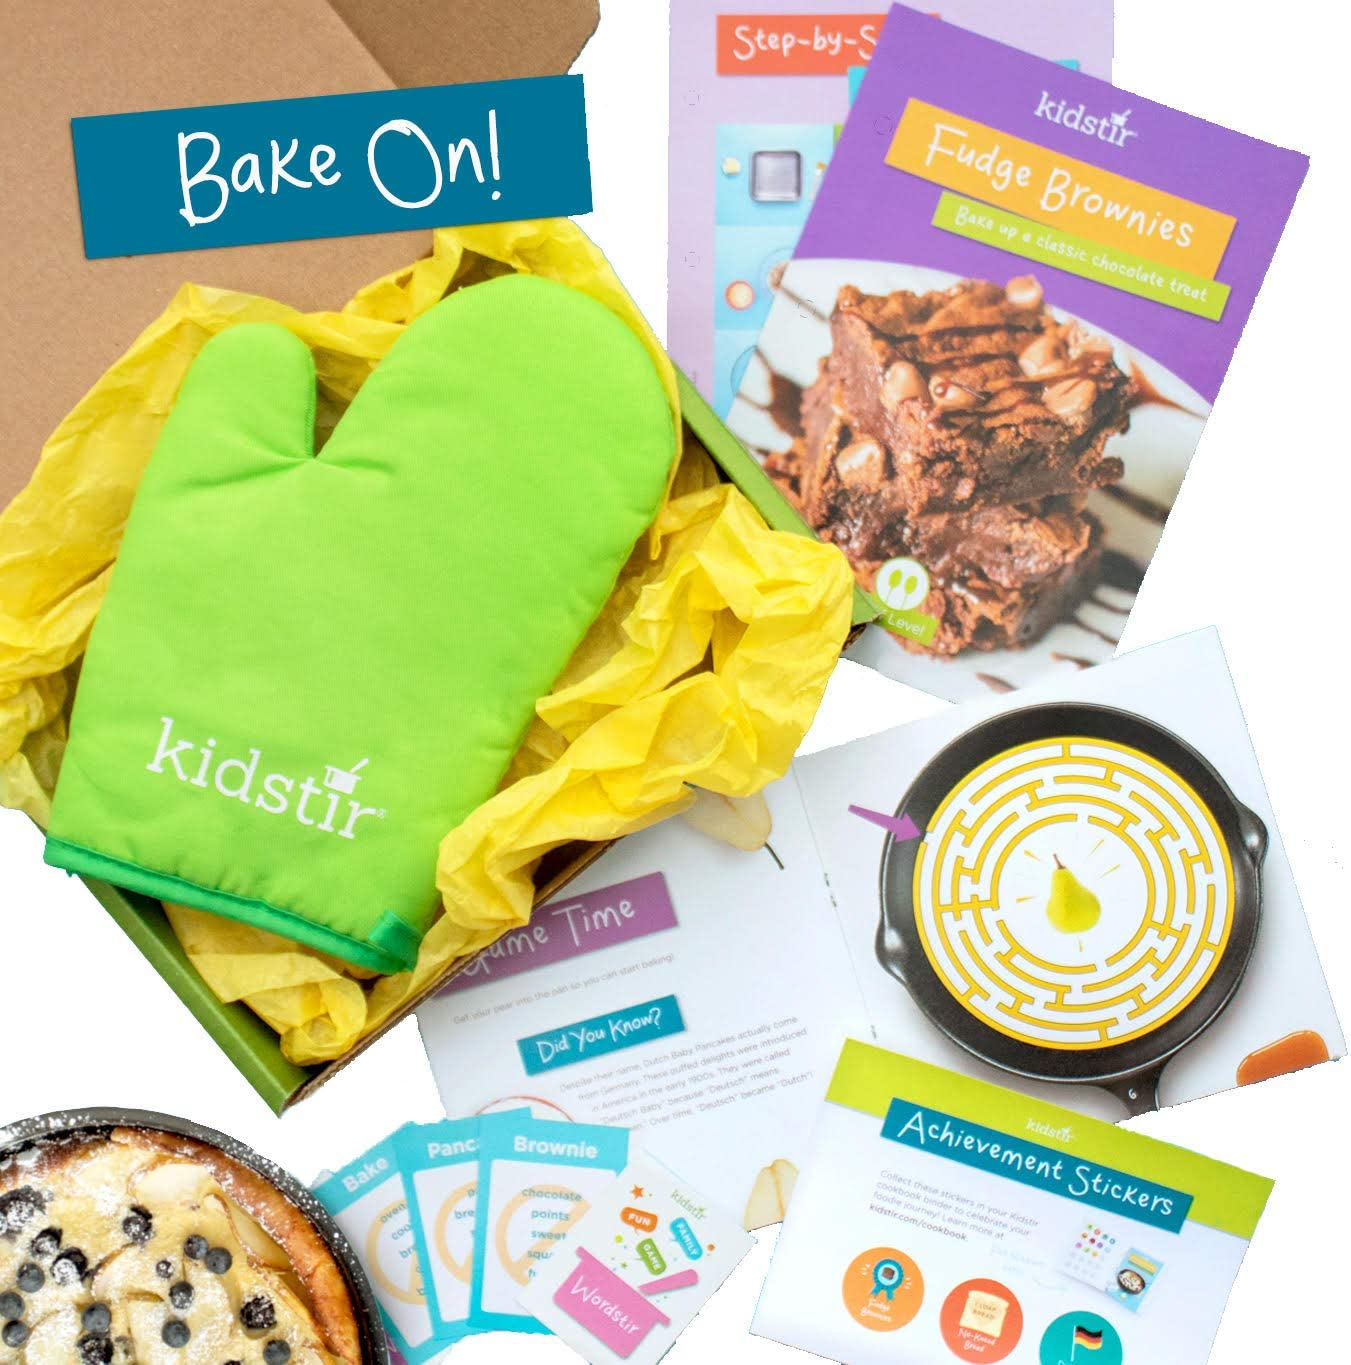 Kidstir - Monthly Kids Cooking Kit Subscription Box - Fun Monthly Recipes, Cool Tools, Creative Ideas for your Child to Learn Cooking and Baking